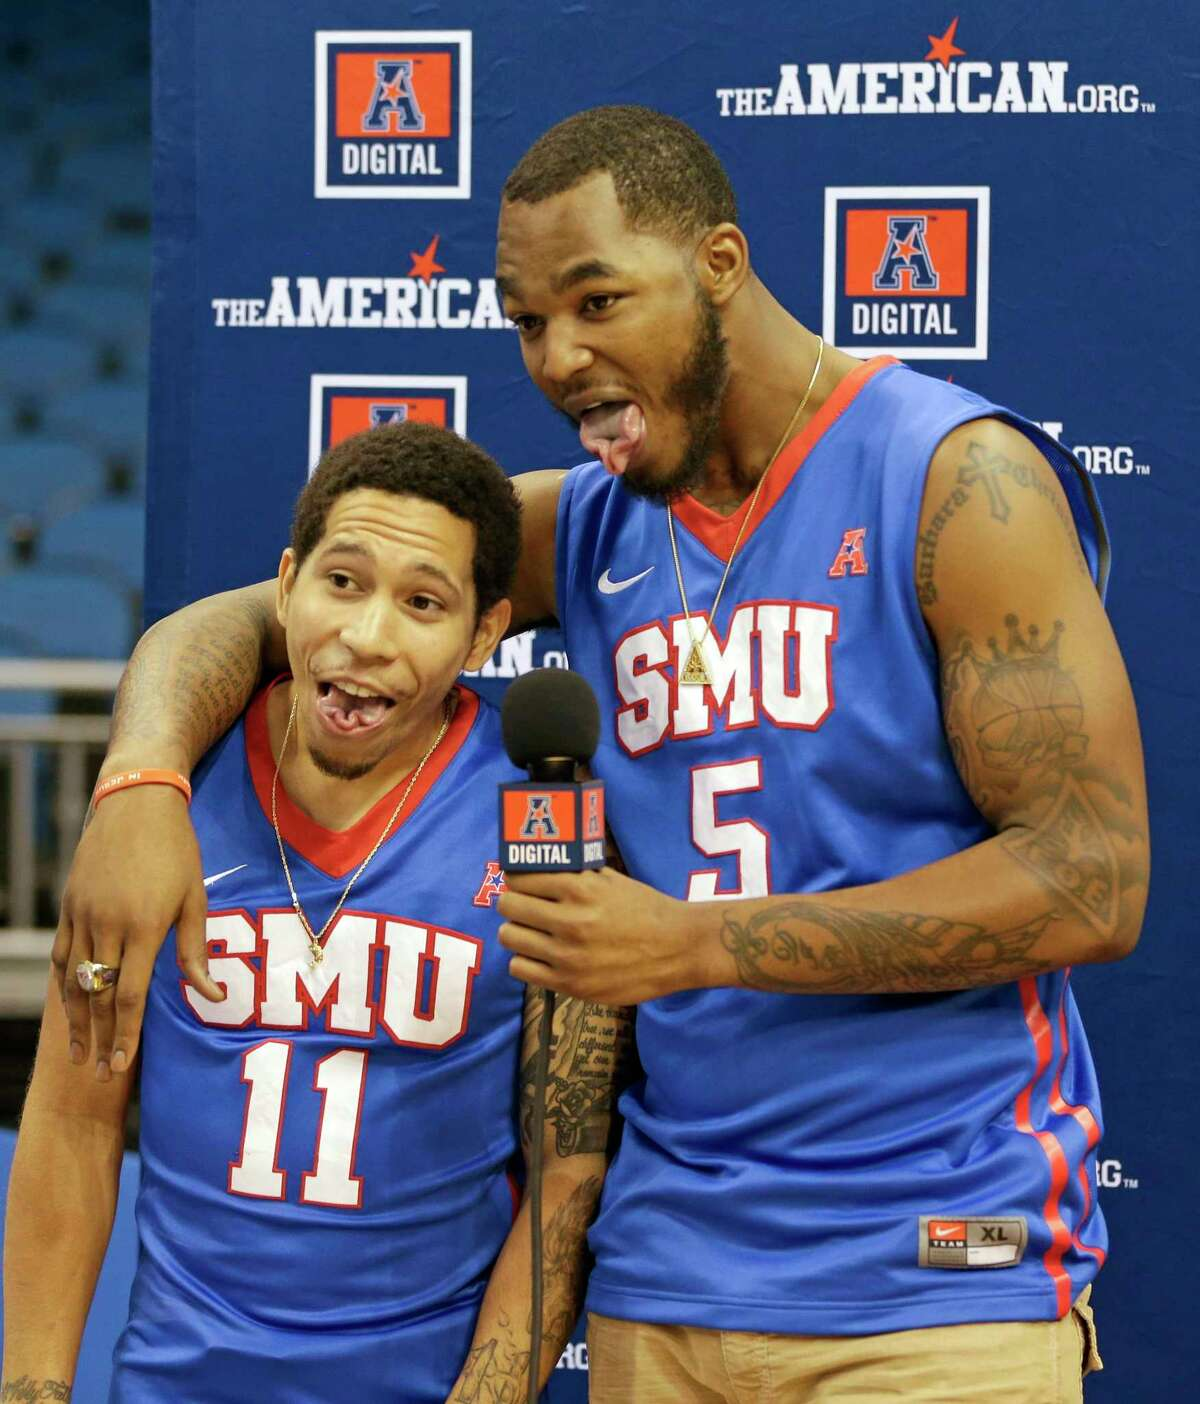 SMU players Nic Moore (11), the preseason player of the year, and Markus Kennedy (5) joke around during AAC media day on Tuesday in Orlando, Fla.